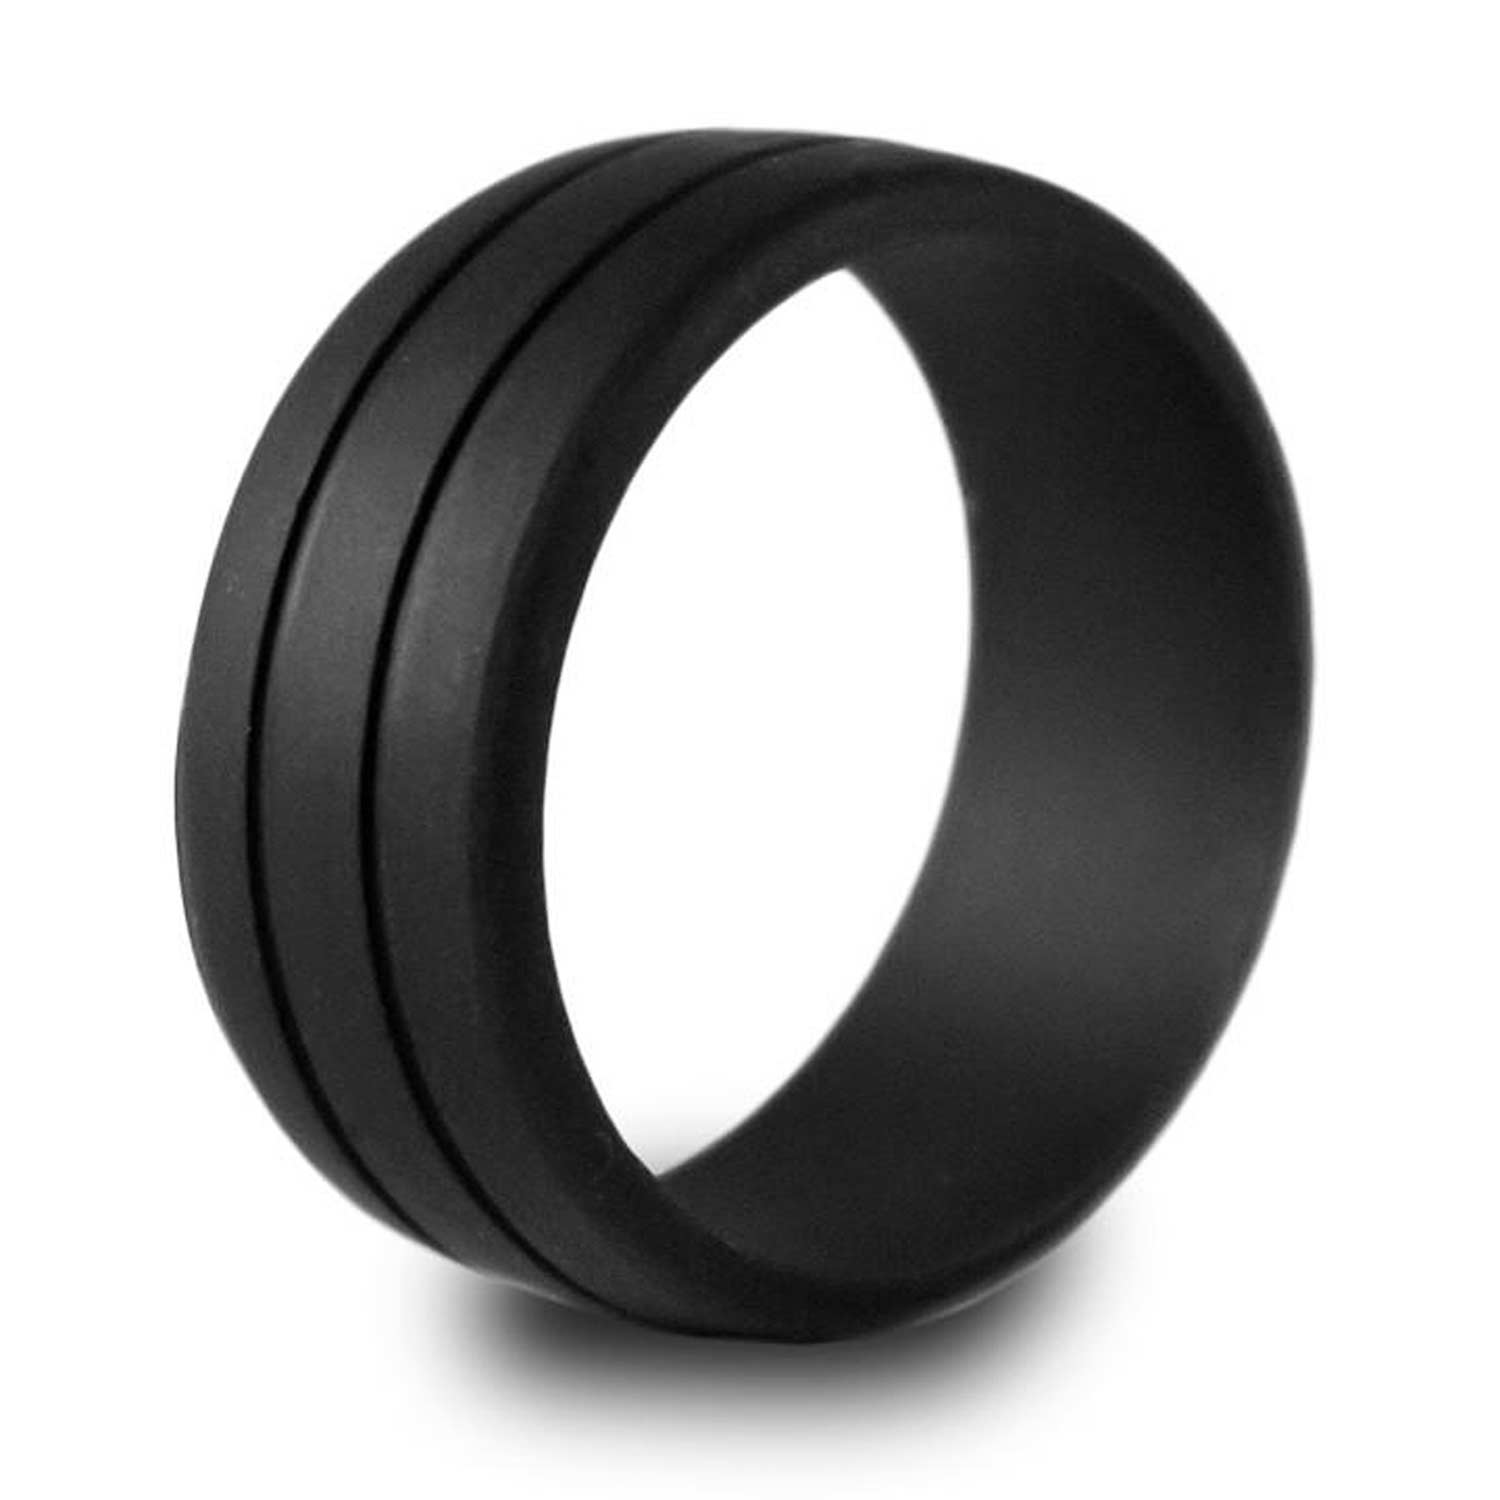 Komfortringz Men's Double Debosed Silicone Wedding Ring